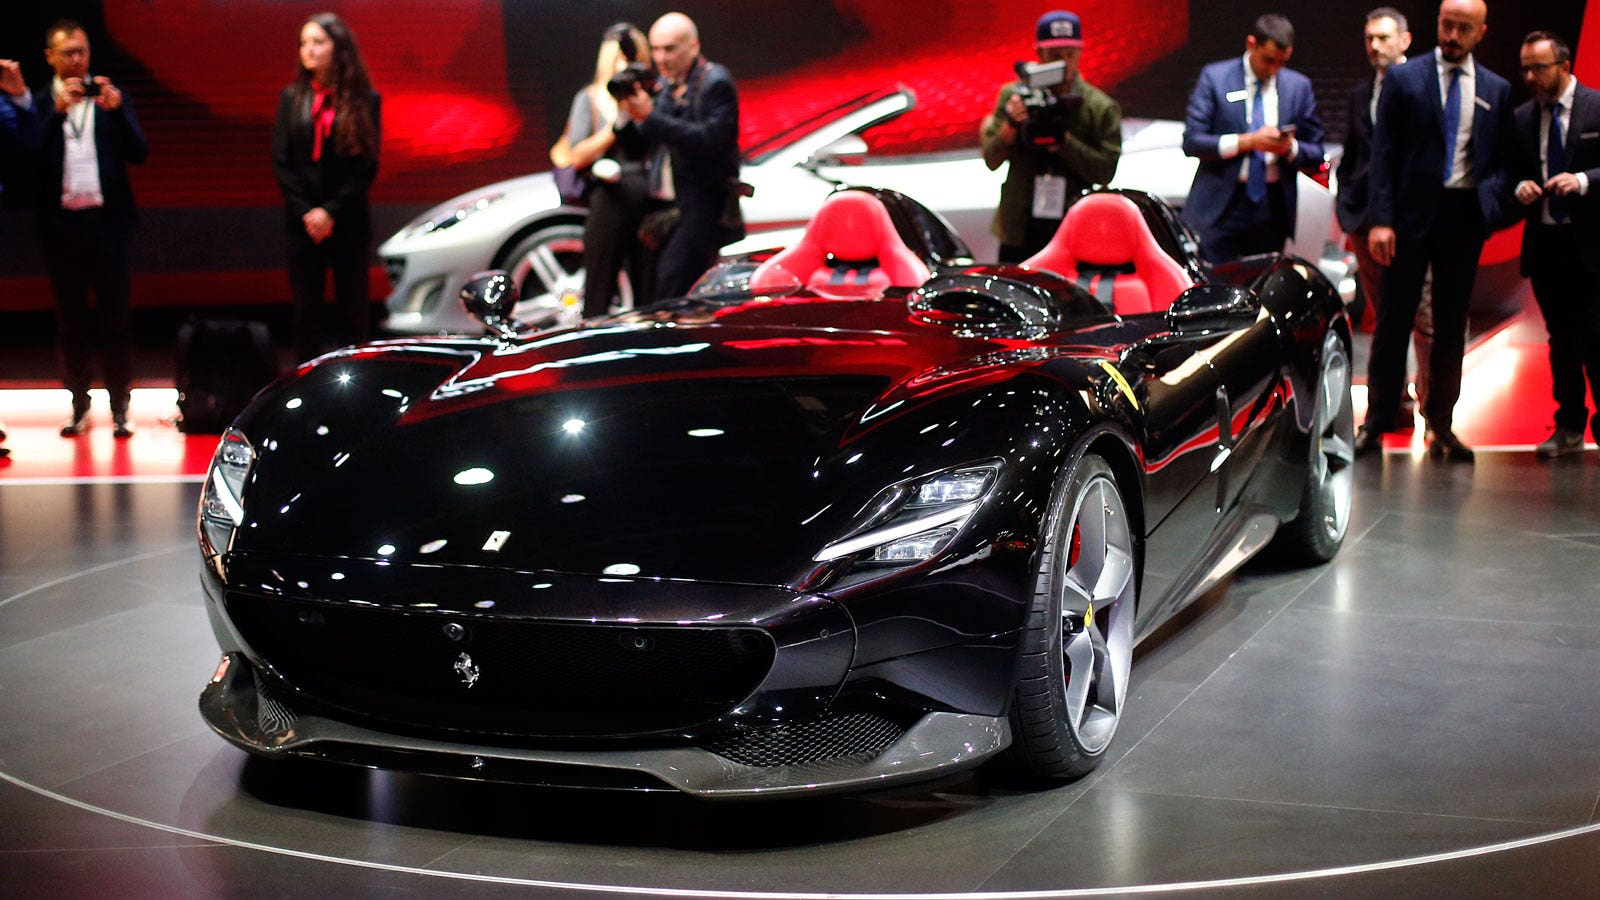 Paris Motor Show Ferrari BMW And Bugatti Bring New Sports Cars - Ferrari car show